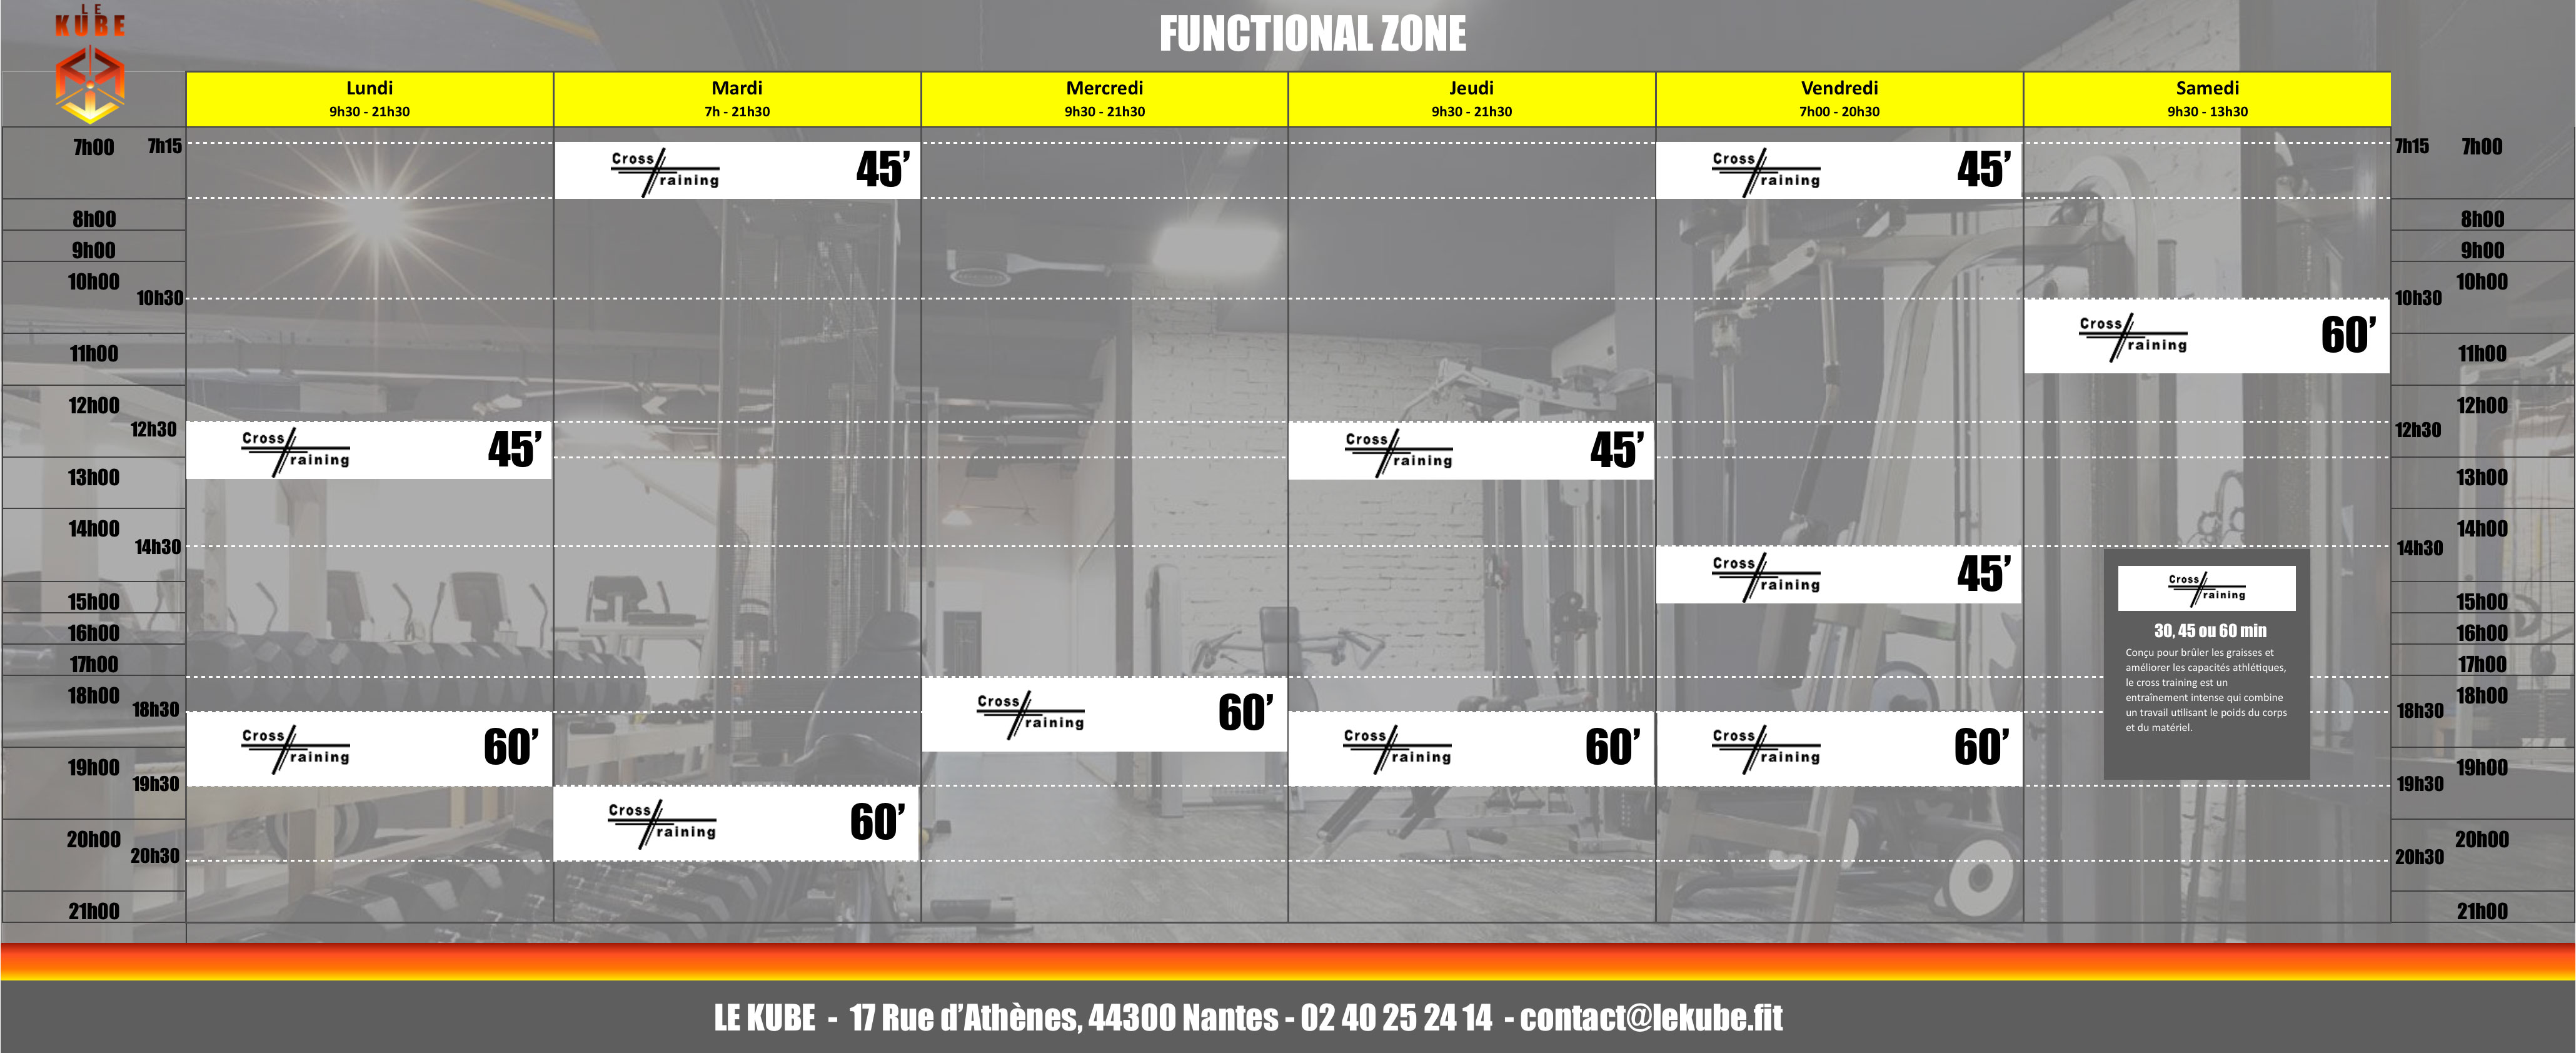 Planning-Functional-zone-18 19